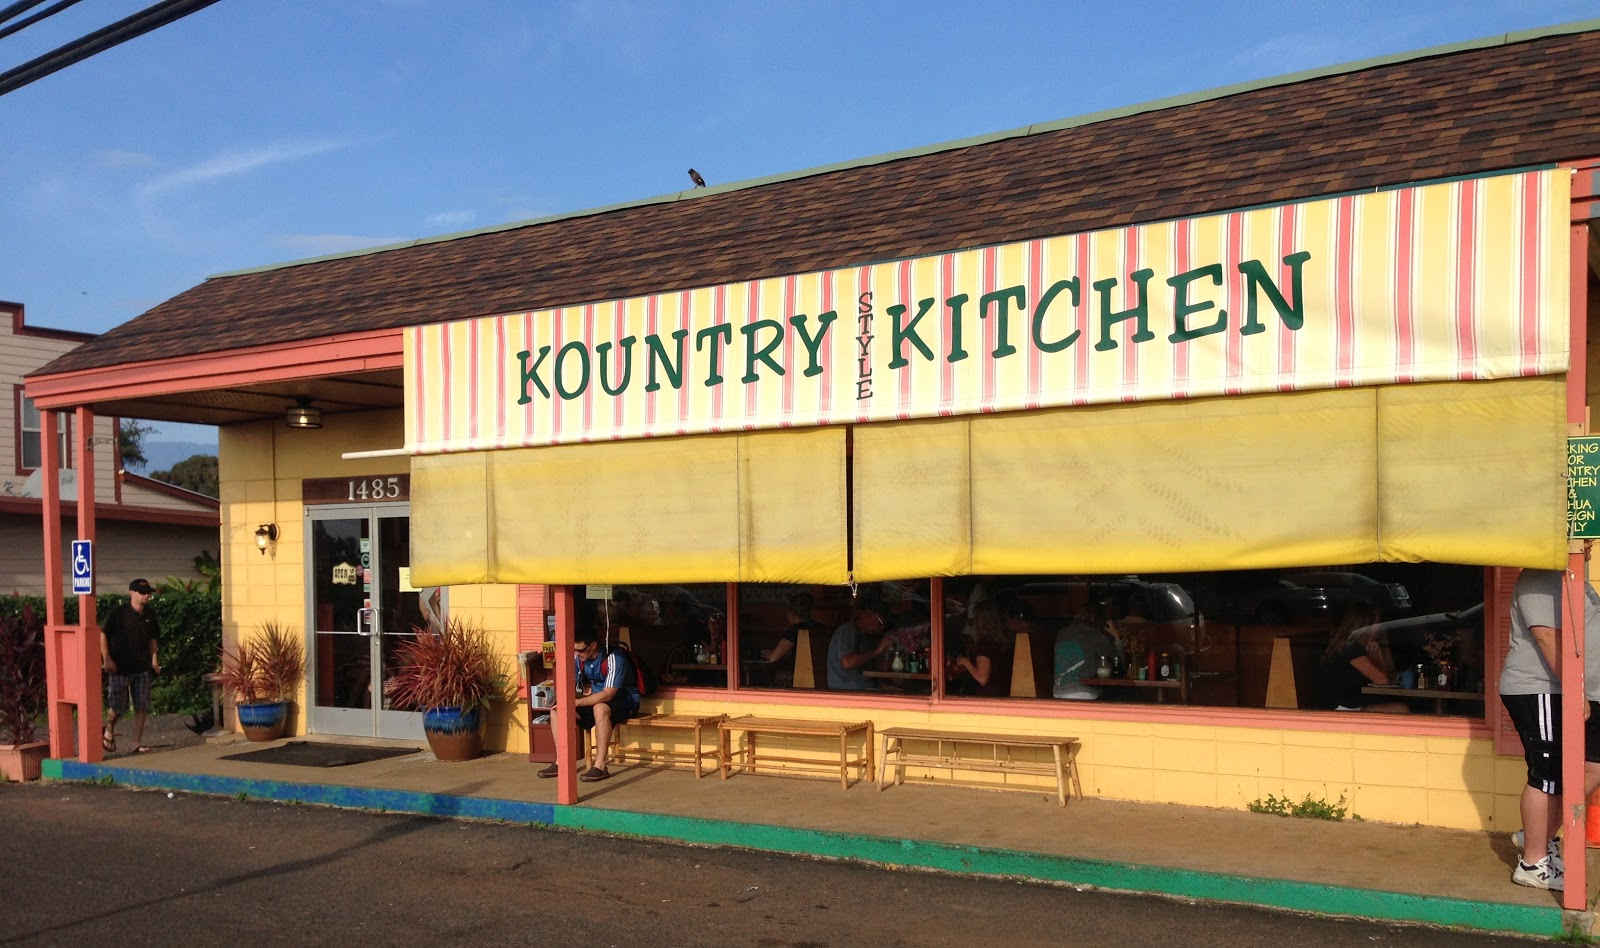 TASTE OF HAWAII: KOUNTRY STYLE KITCHEN - KAPAA, KAUAI